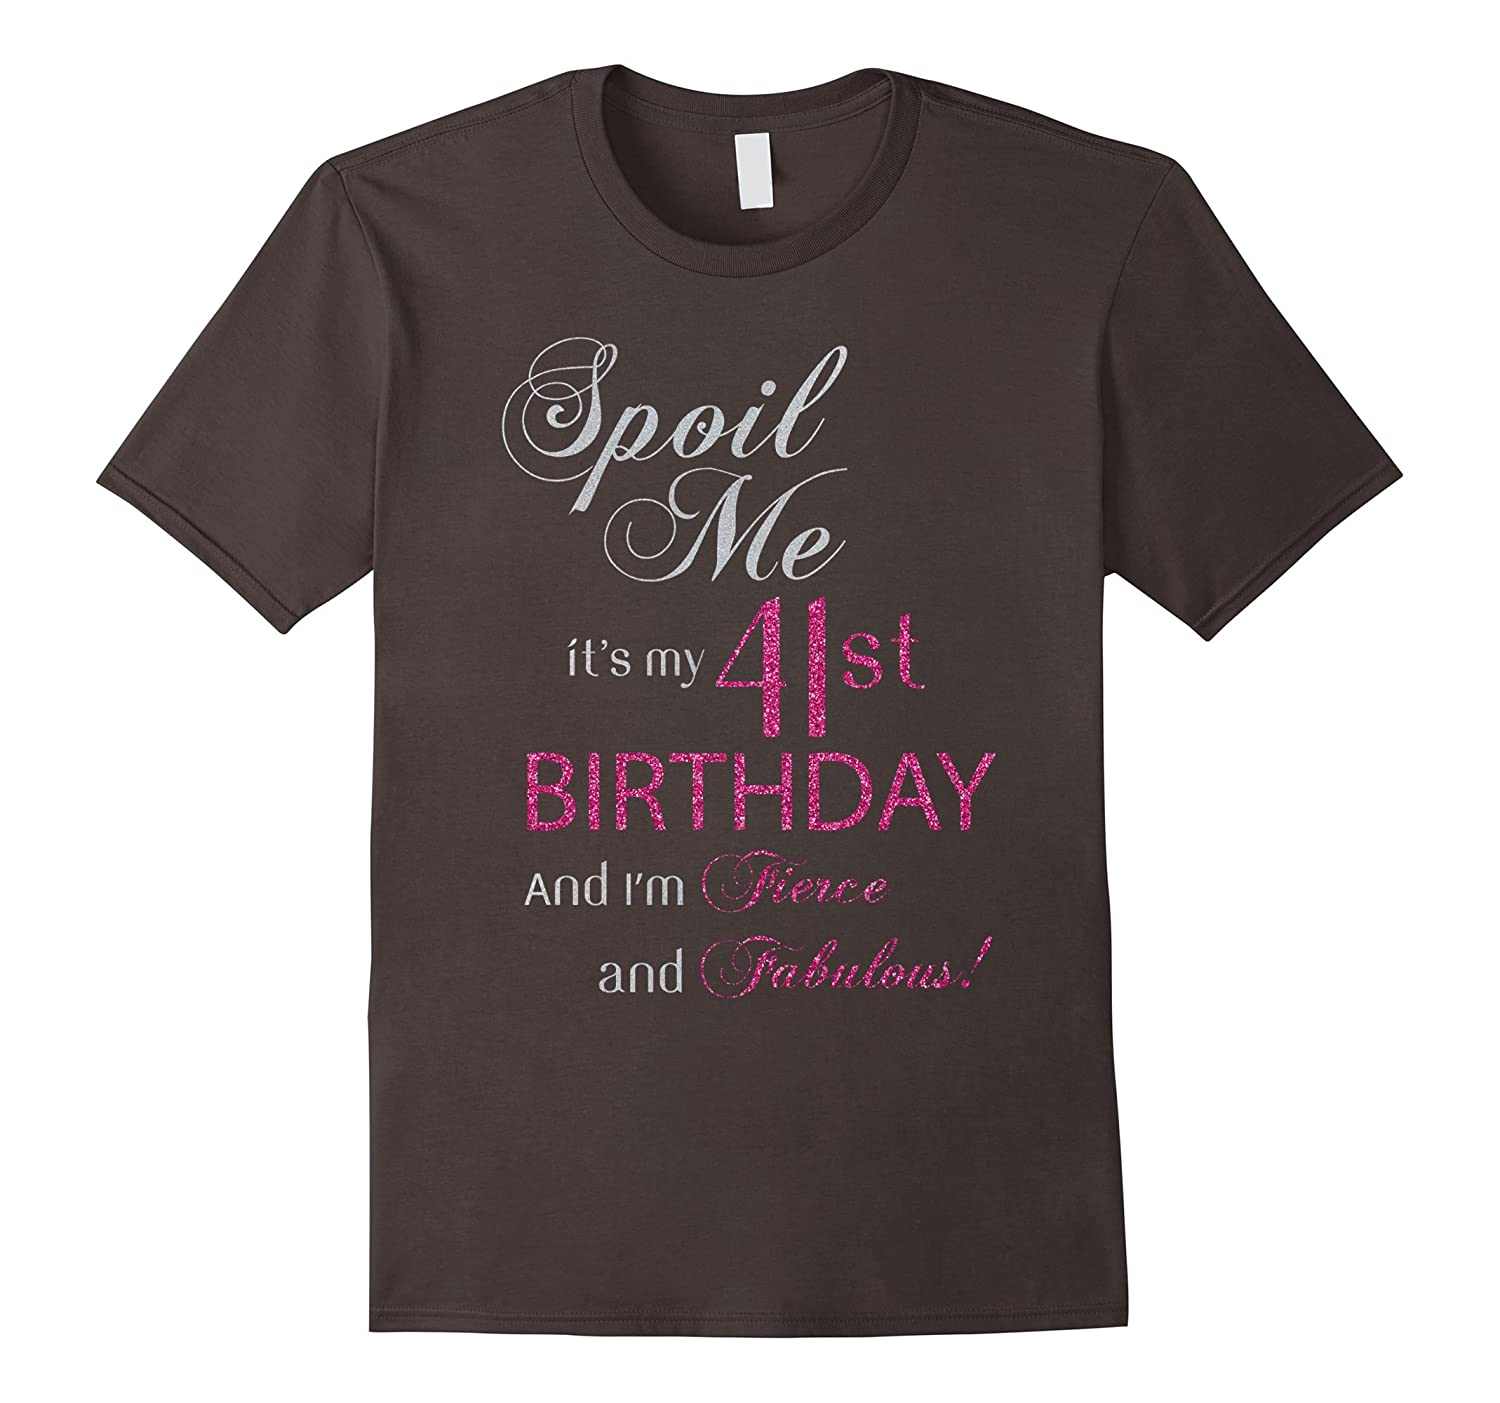 Spoil me, It's my 41st birthday and I'm Fierce and Fabulous-FL